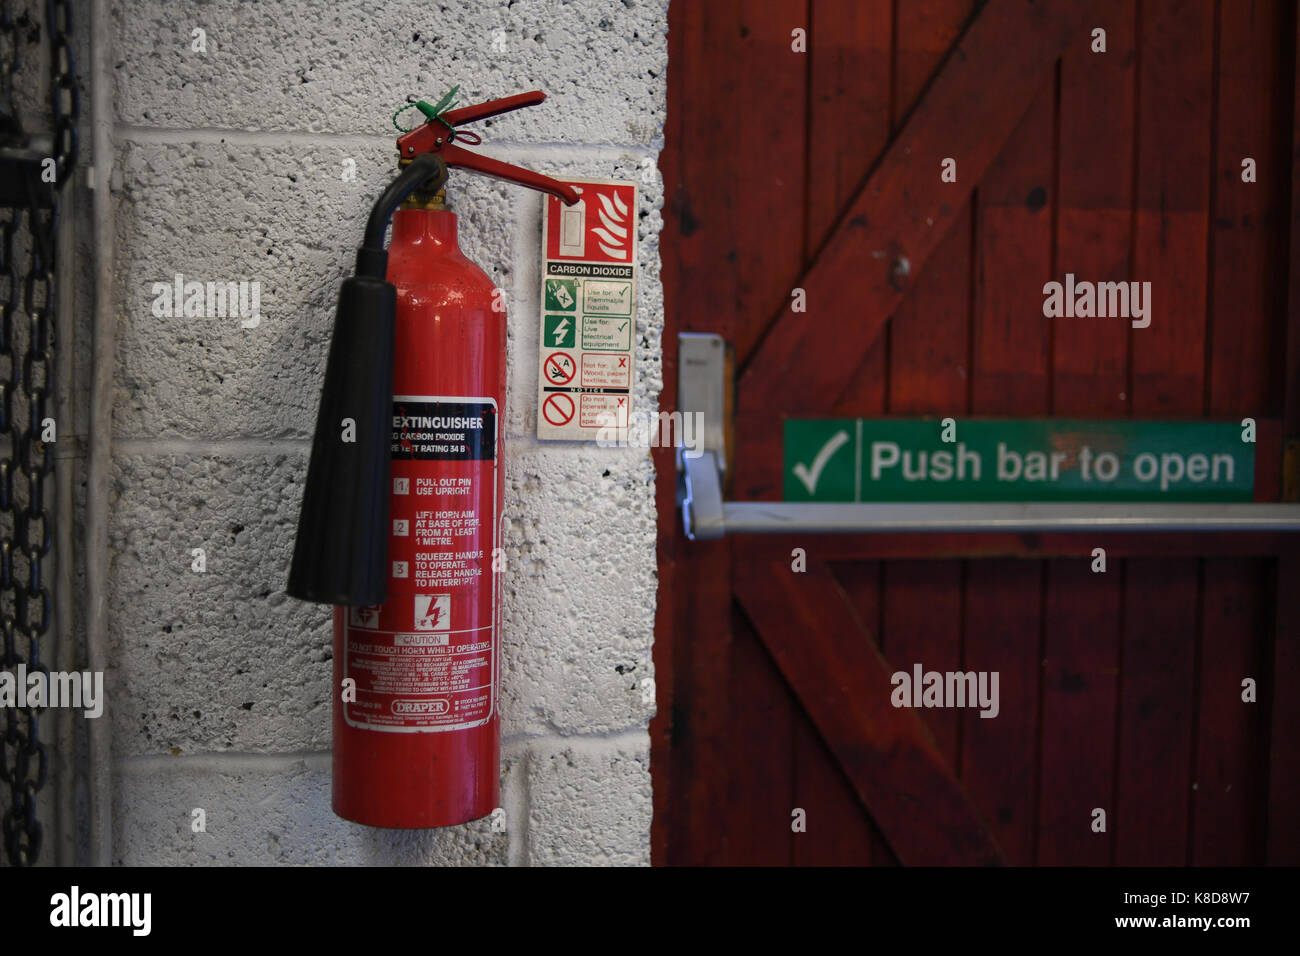 Wall Mounted  Carbon dioxide Fire extinguisher - Stock Image